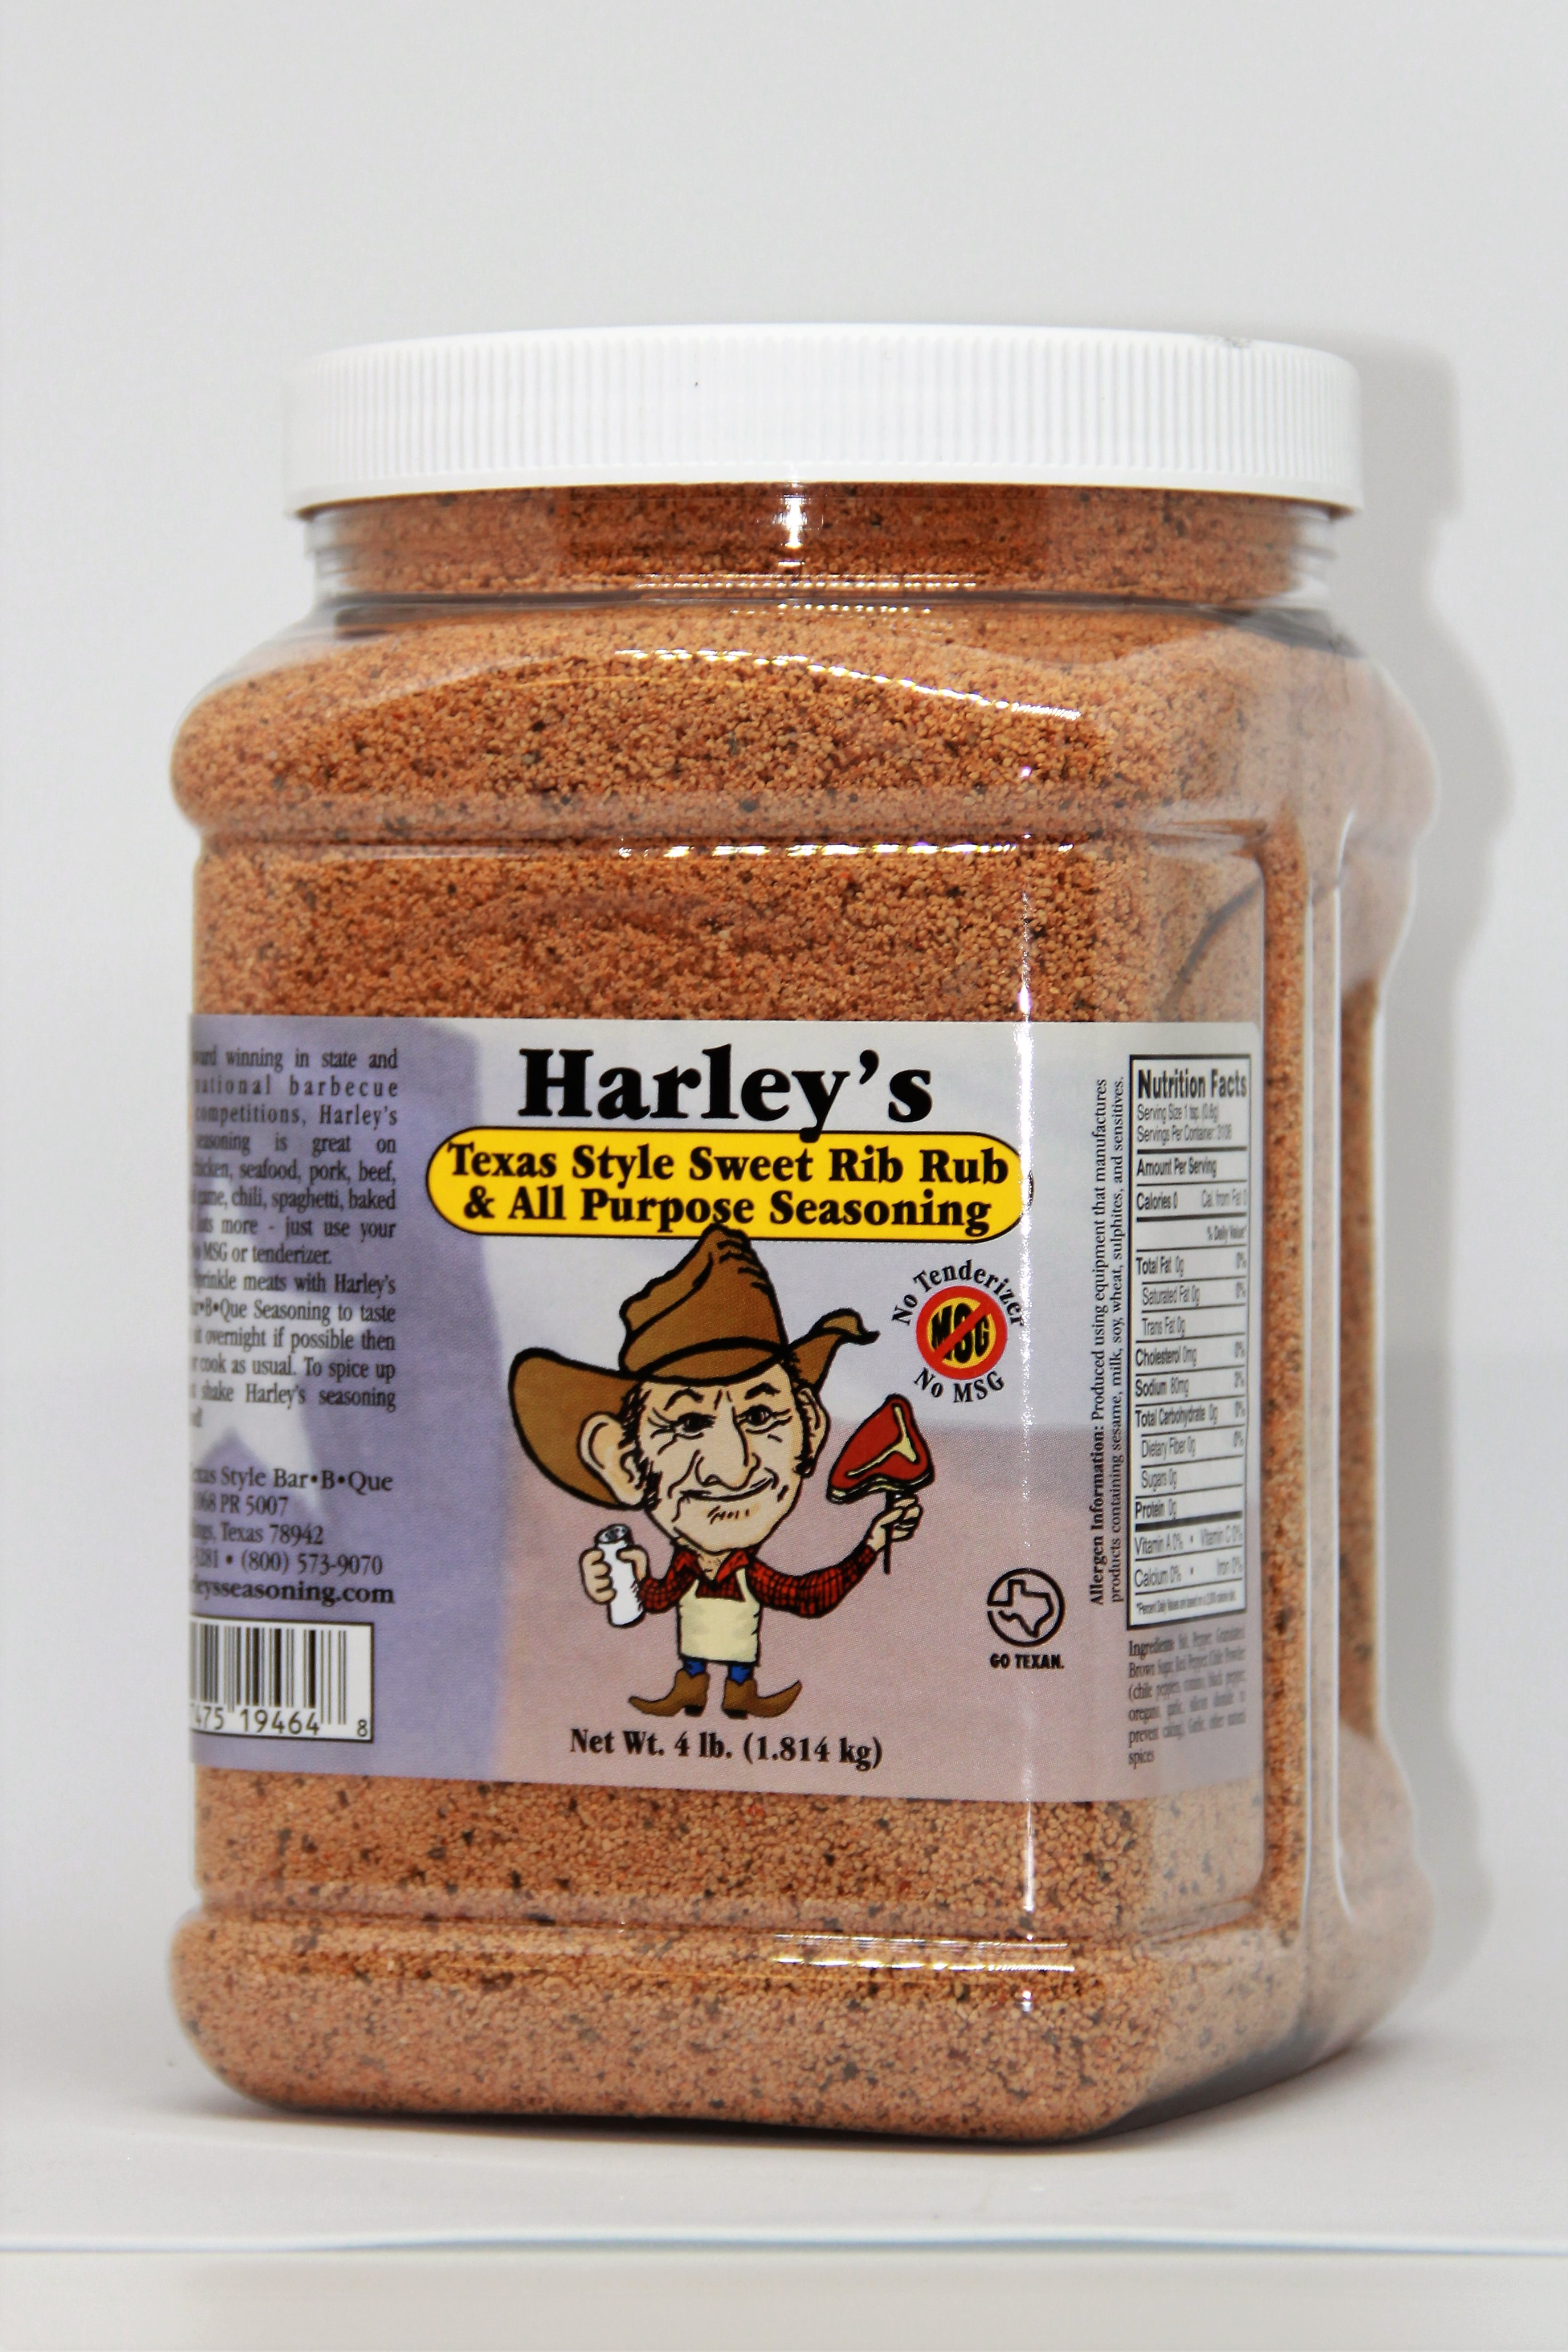 Harley's Sweet No MSG No Tenderizer (Size: 1/2 Gallon)